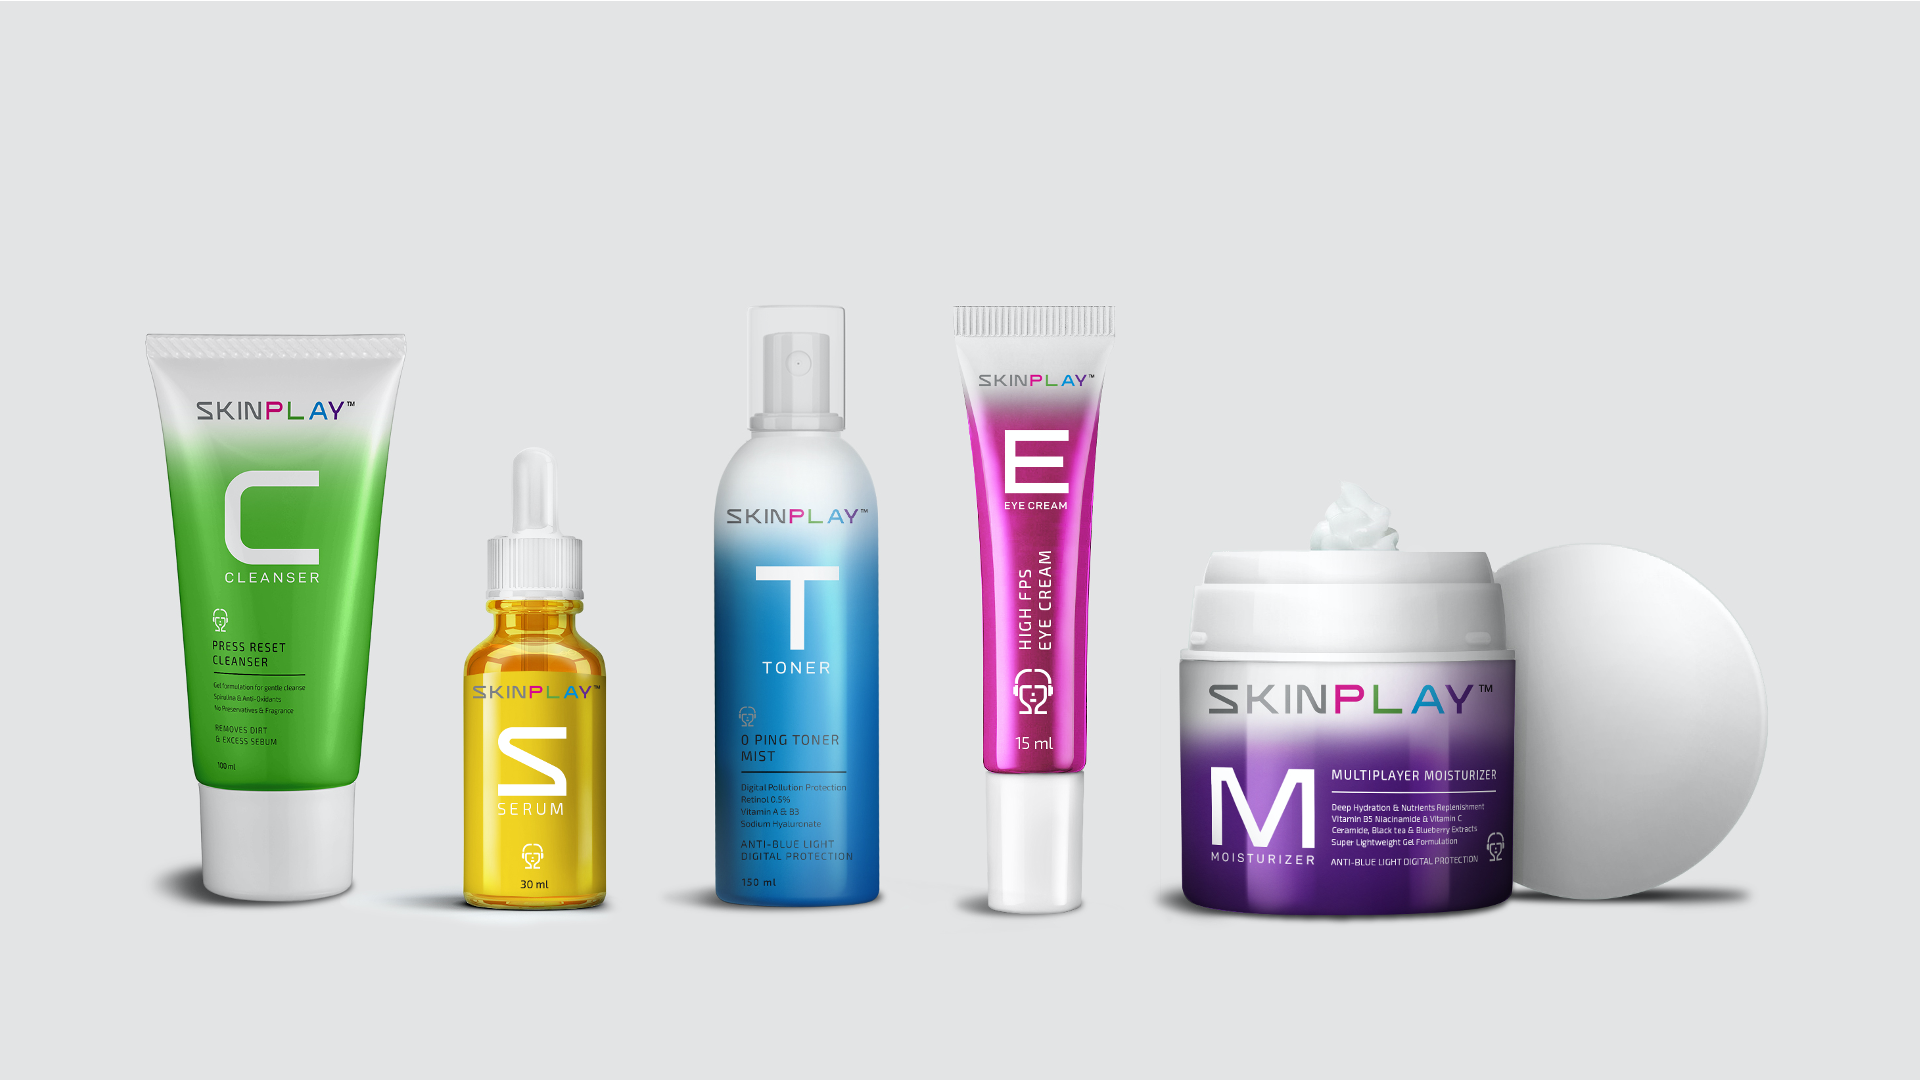 SKIN P L A Y Product line